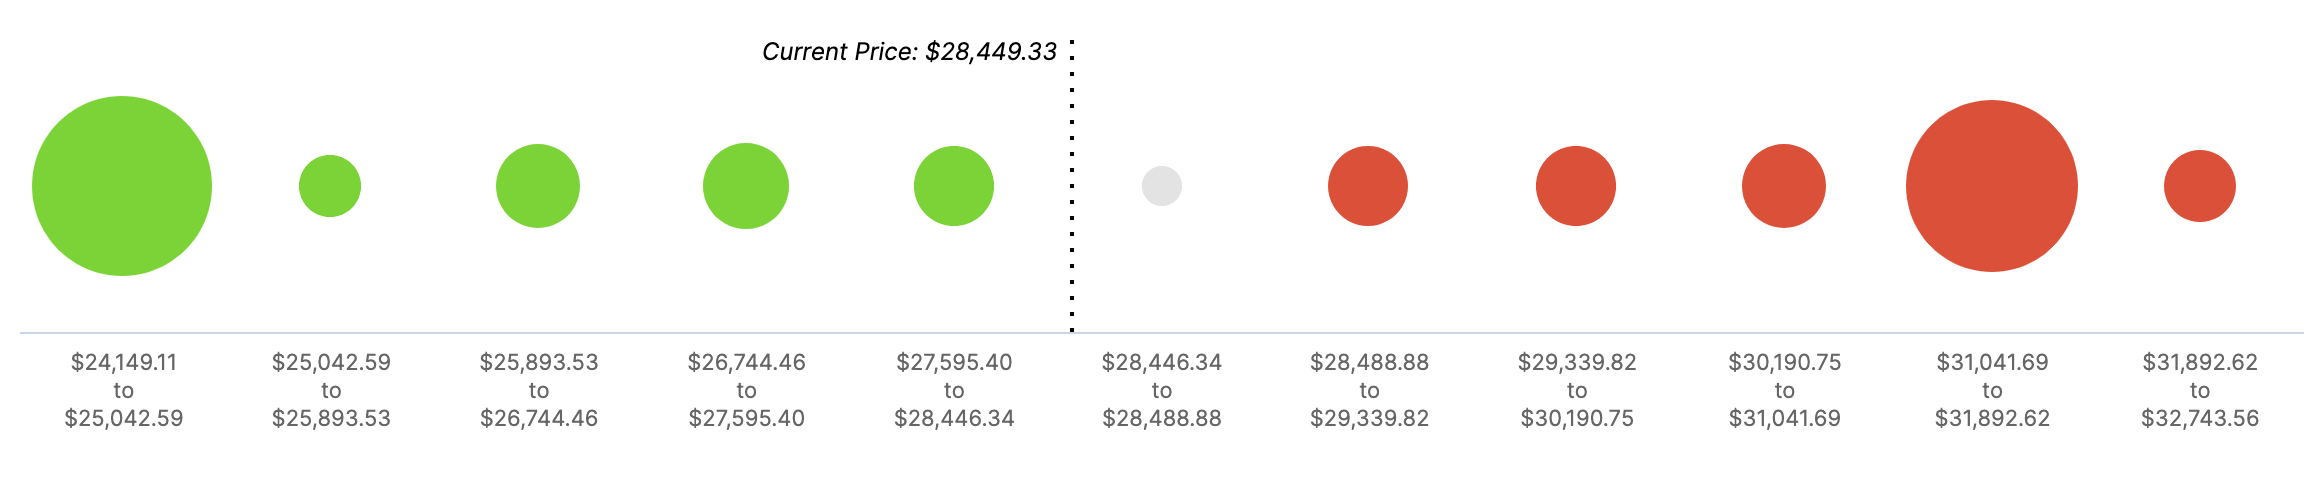 YFI In/Out of the Money Around Price